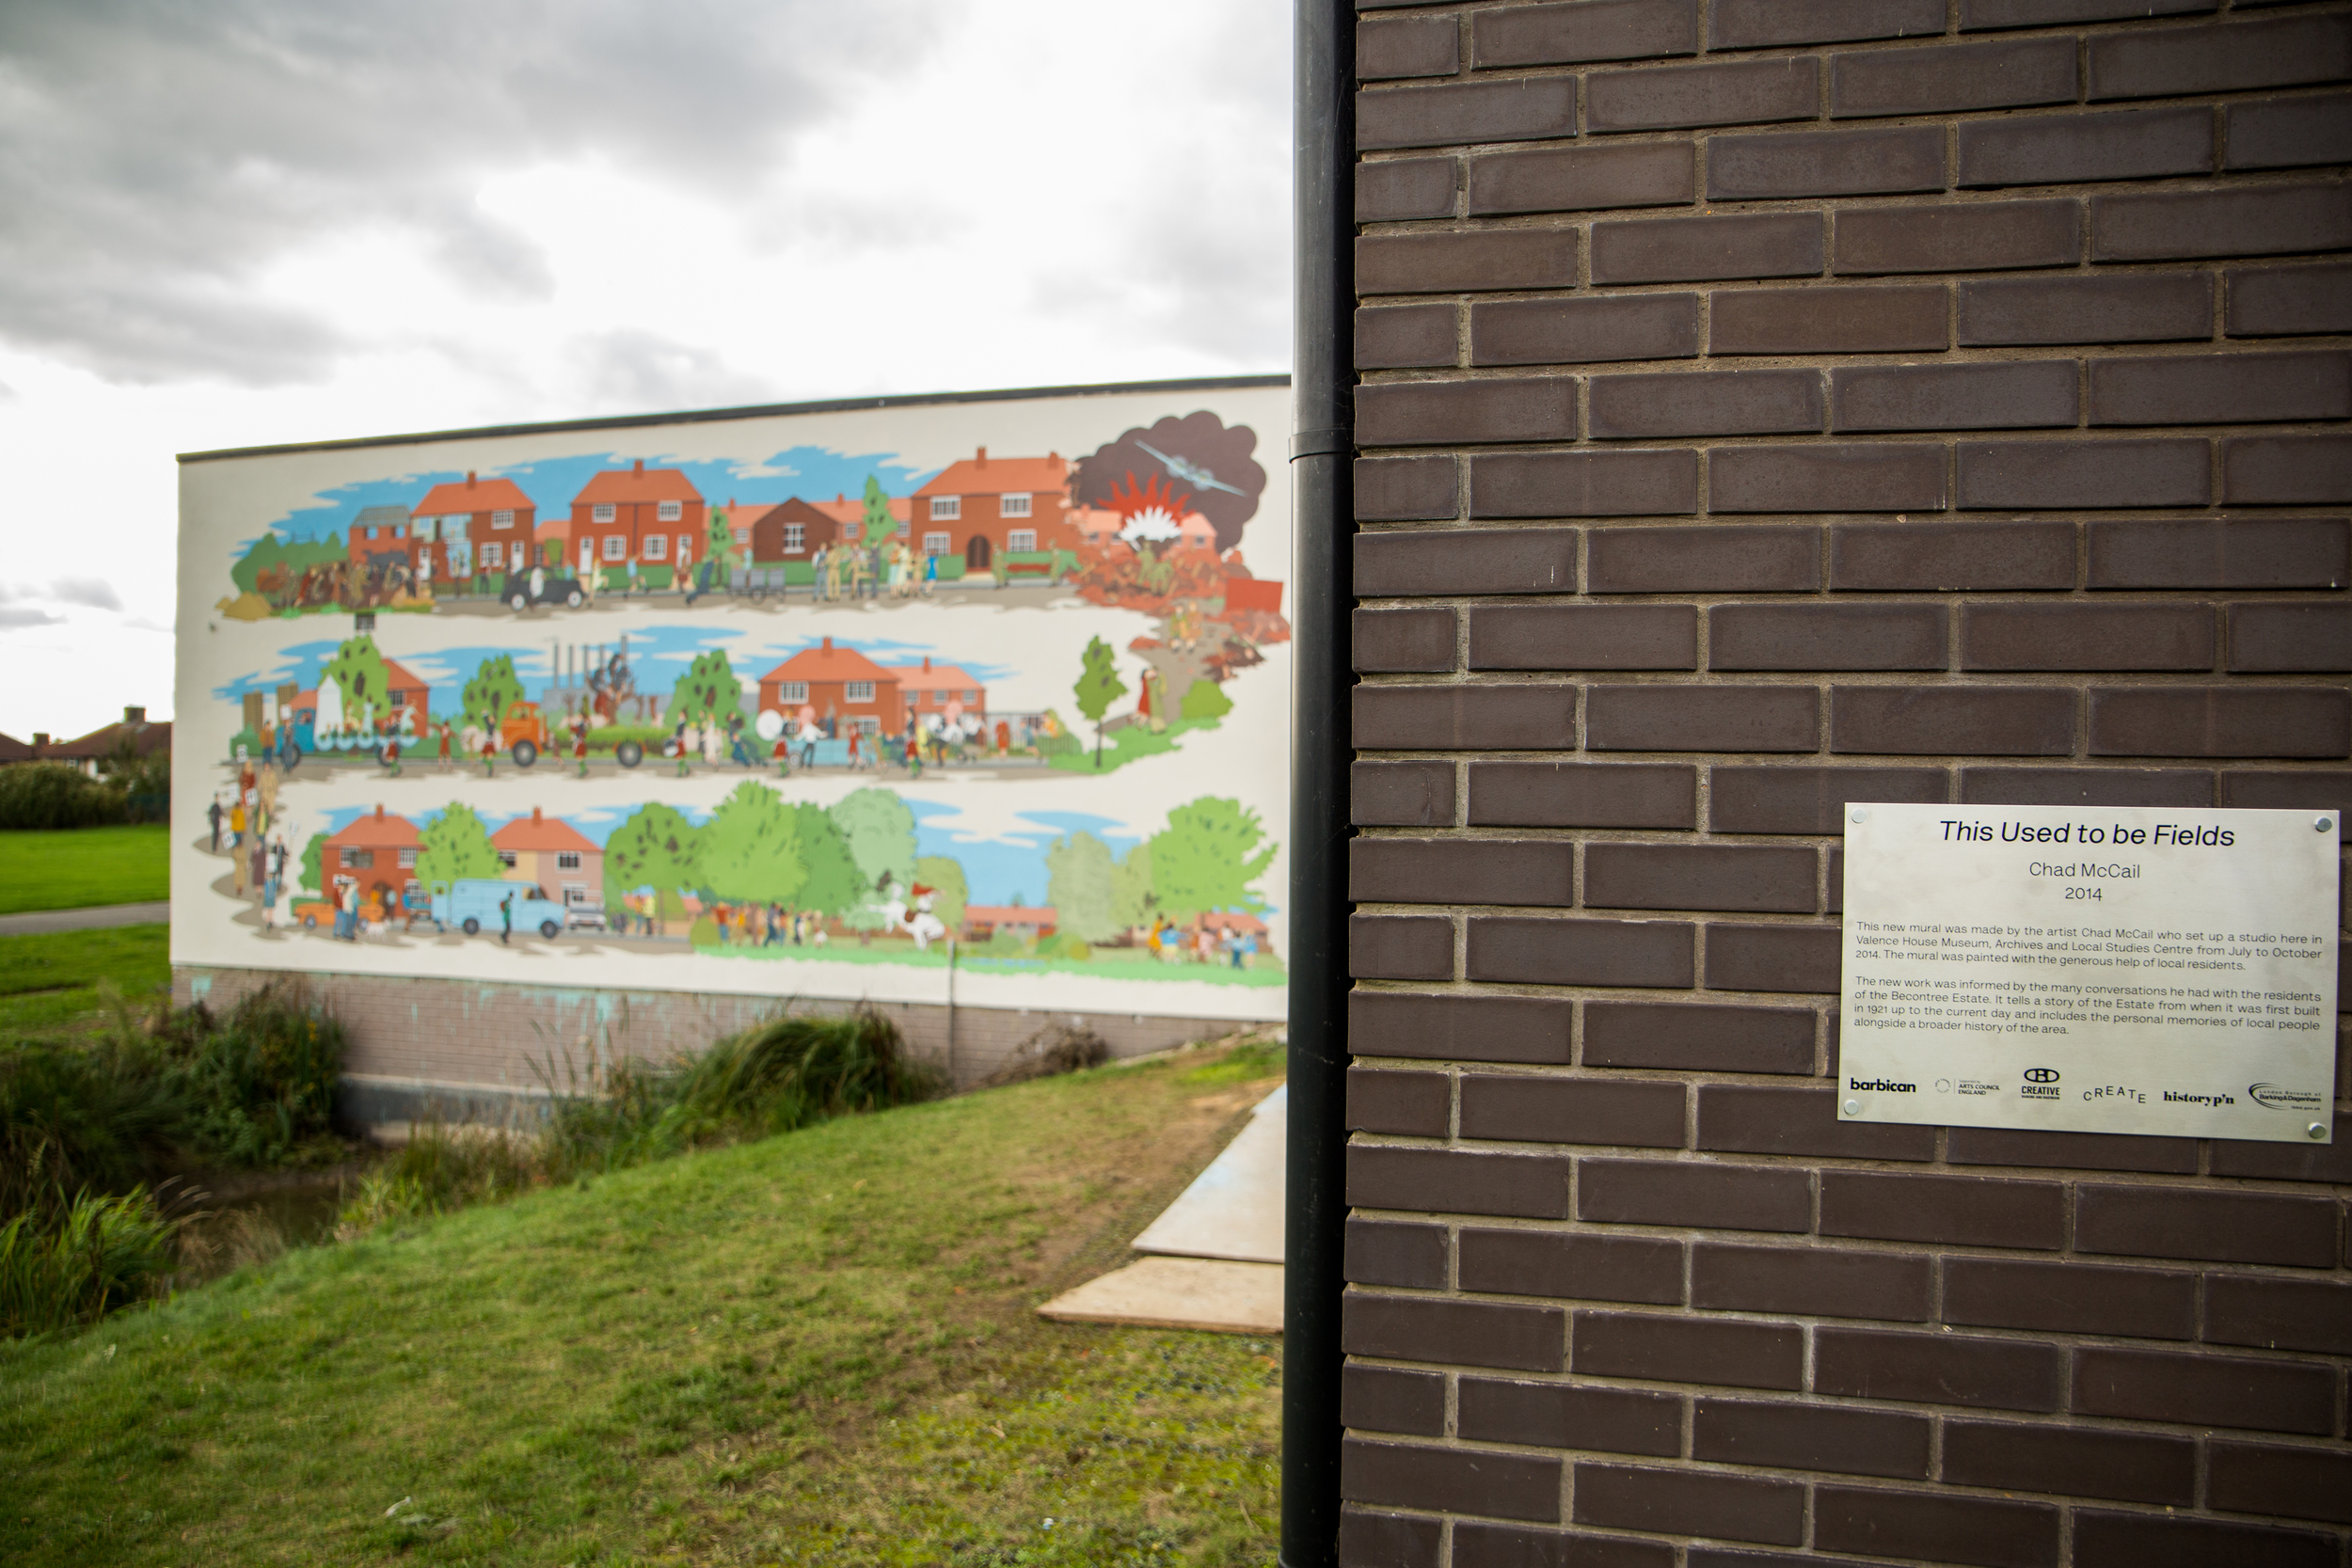 The Becontree Mural Chad McCail 2014 c Emil Charlaff 3.jpg